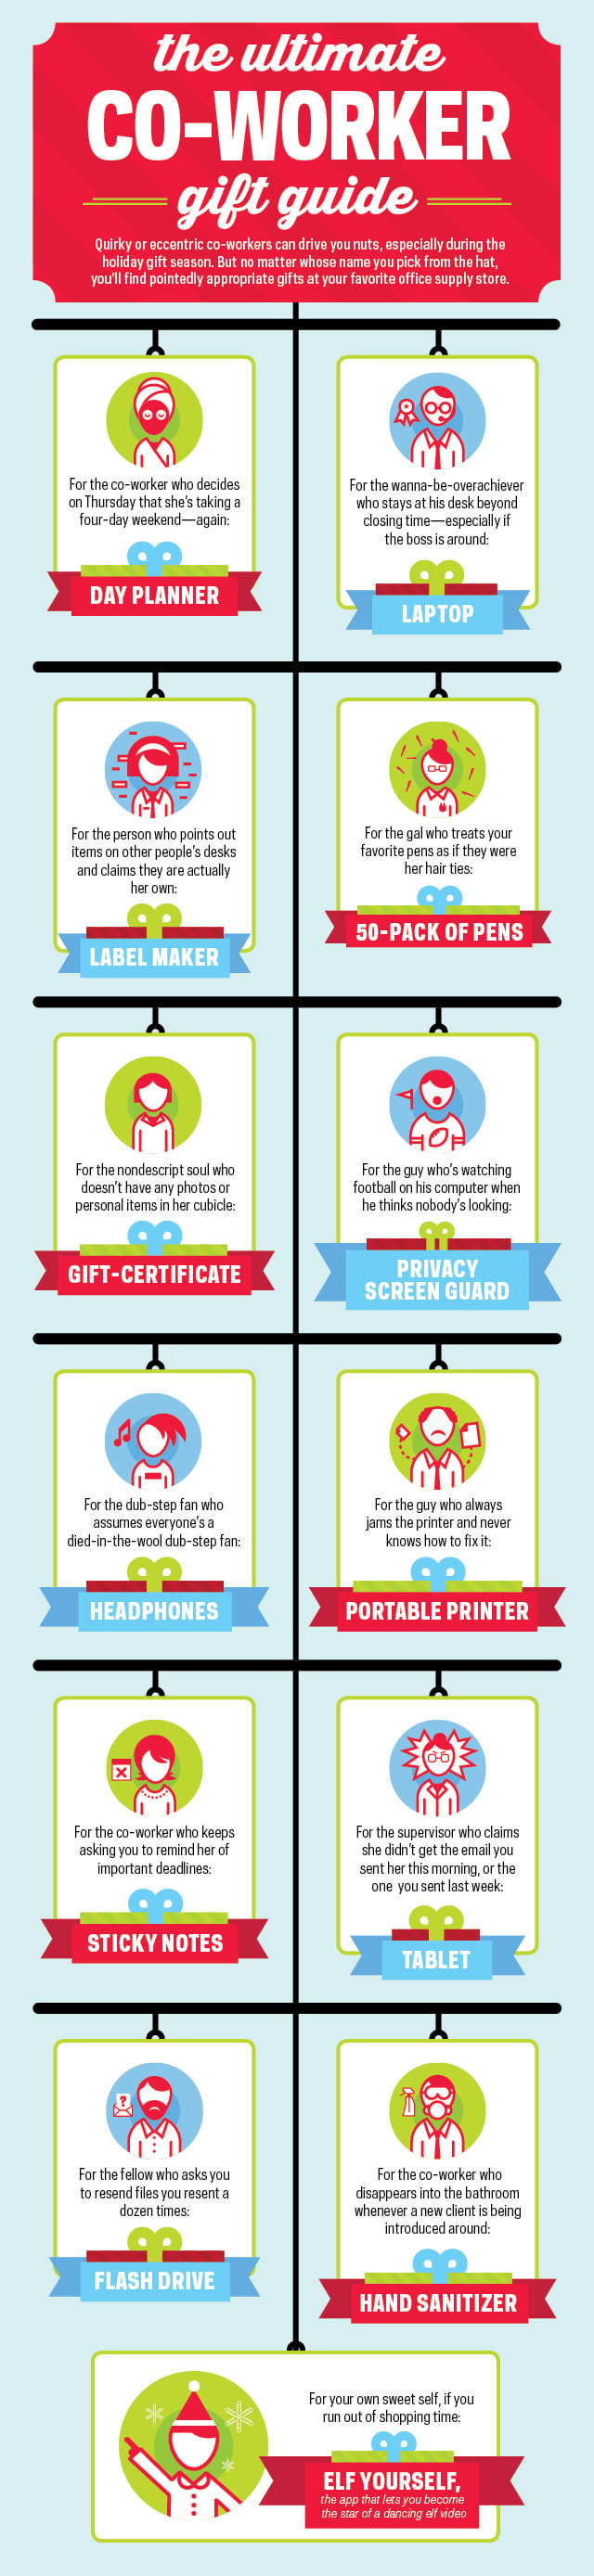 The Ultimate Co-Worker Gift Guide [Infographic]